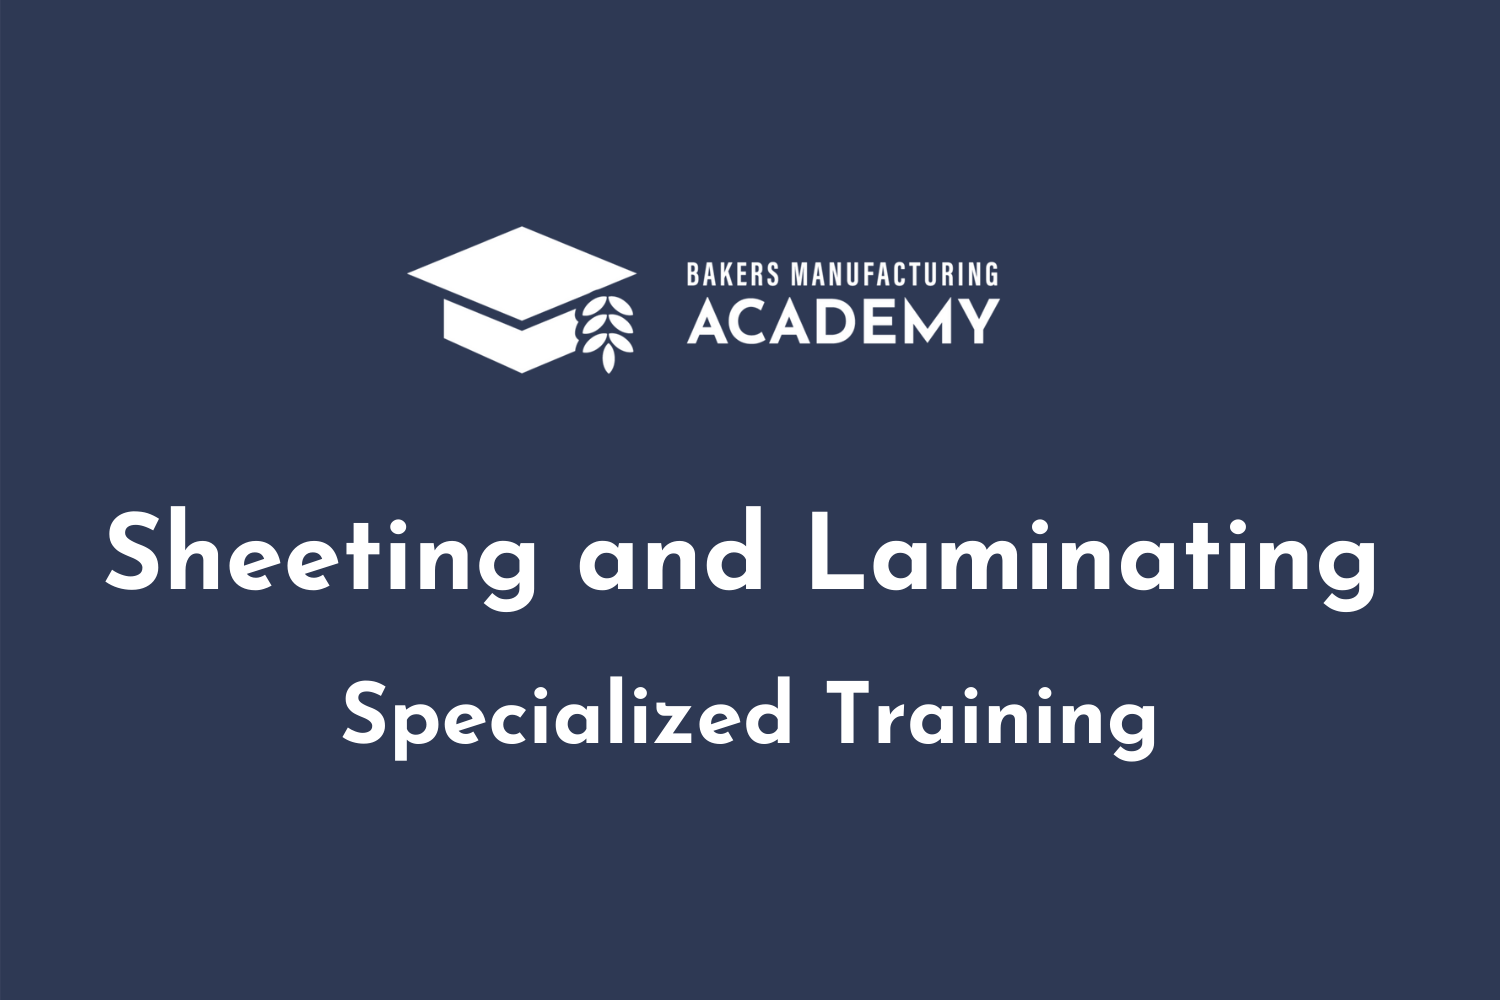 American Bakers Association ABA Sheeting and Laminating Training Bakers Manufacturing Academy